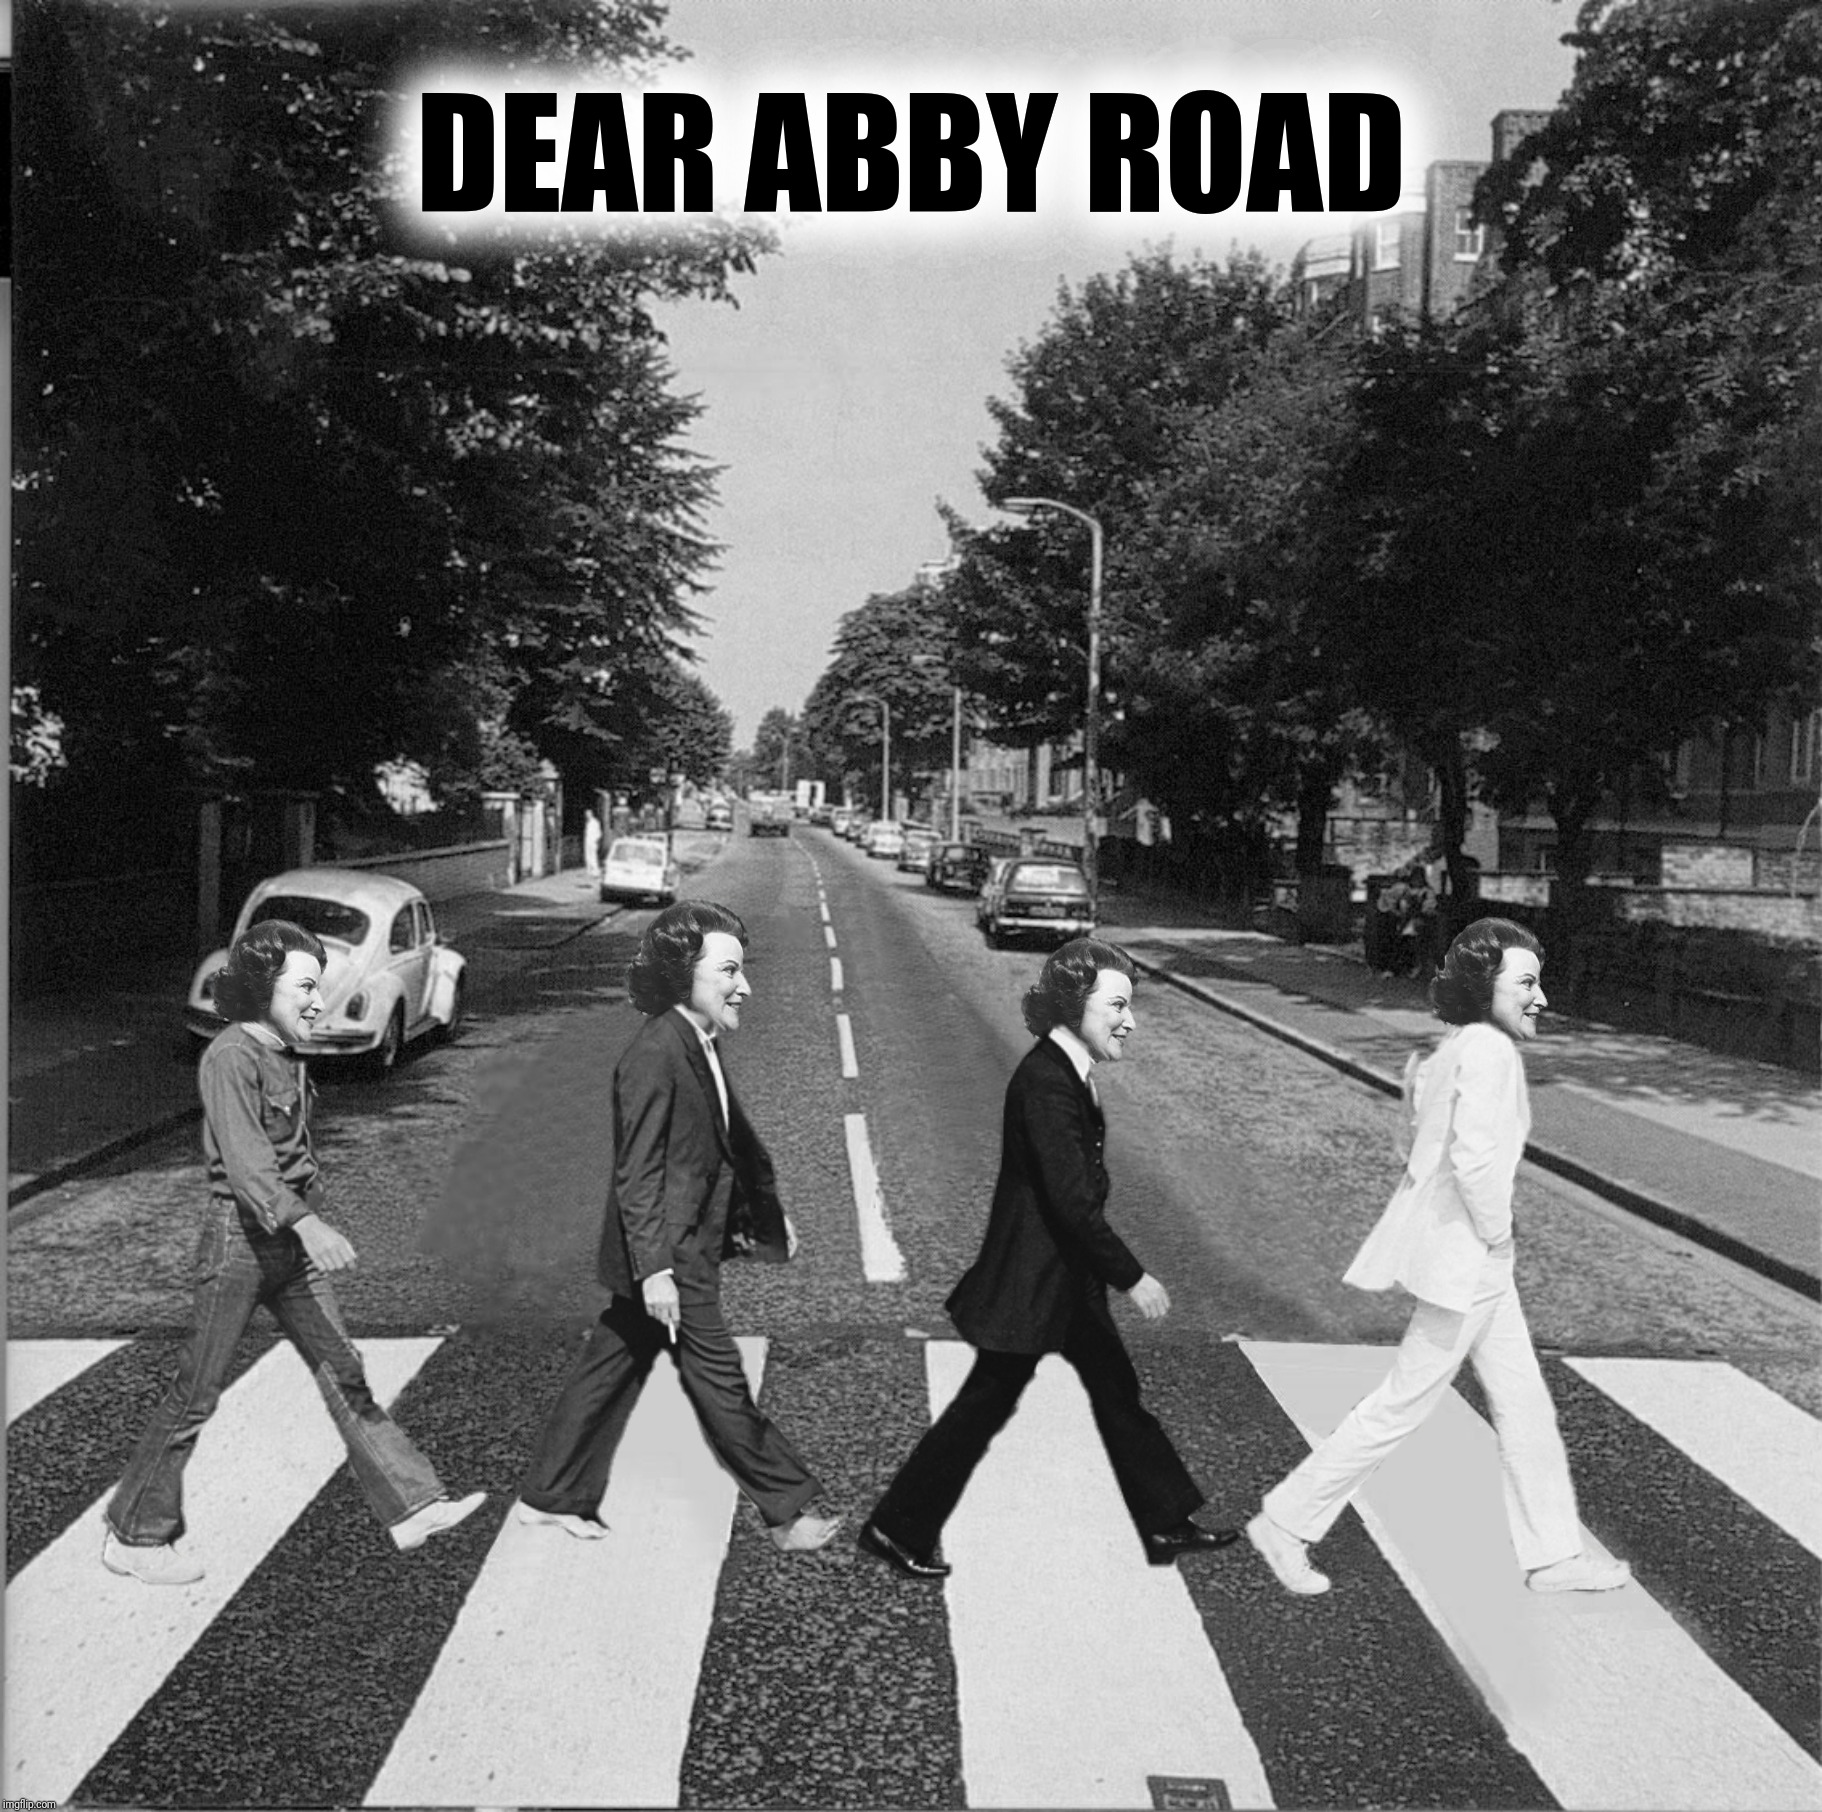 Bad Photoshop Sunday presents:  A blast from the past | DEAR ABBY ROAD | image tagged in bad photoshop sunday,abbey road,dear abby,the beatles | made w/ Imgflip meme maker